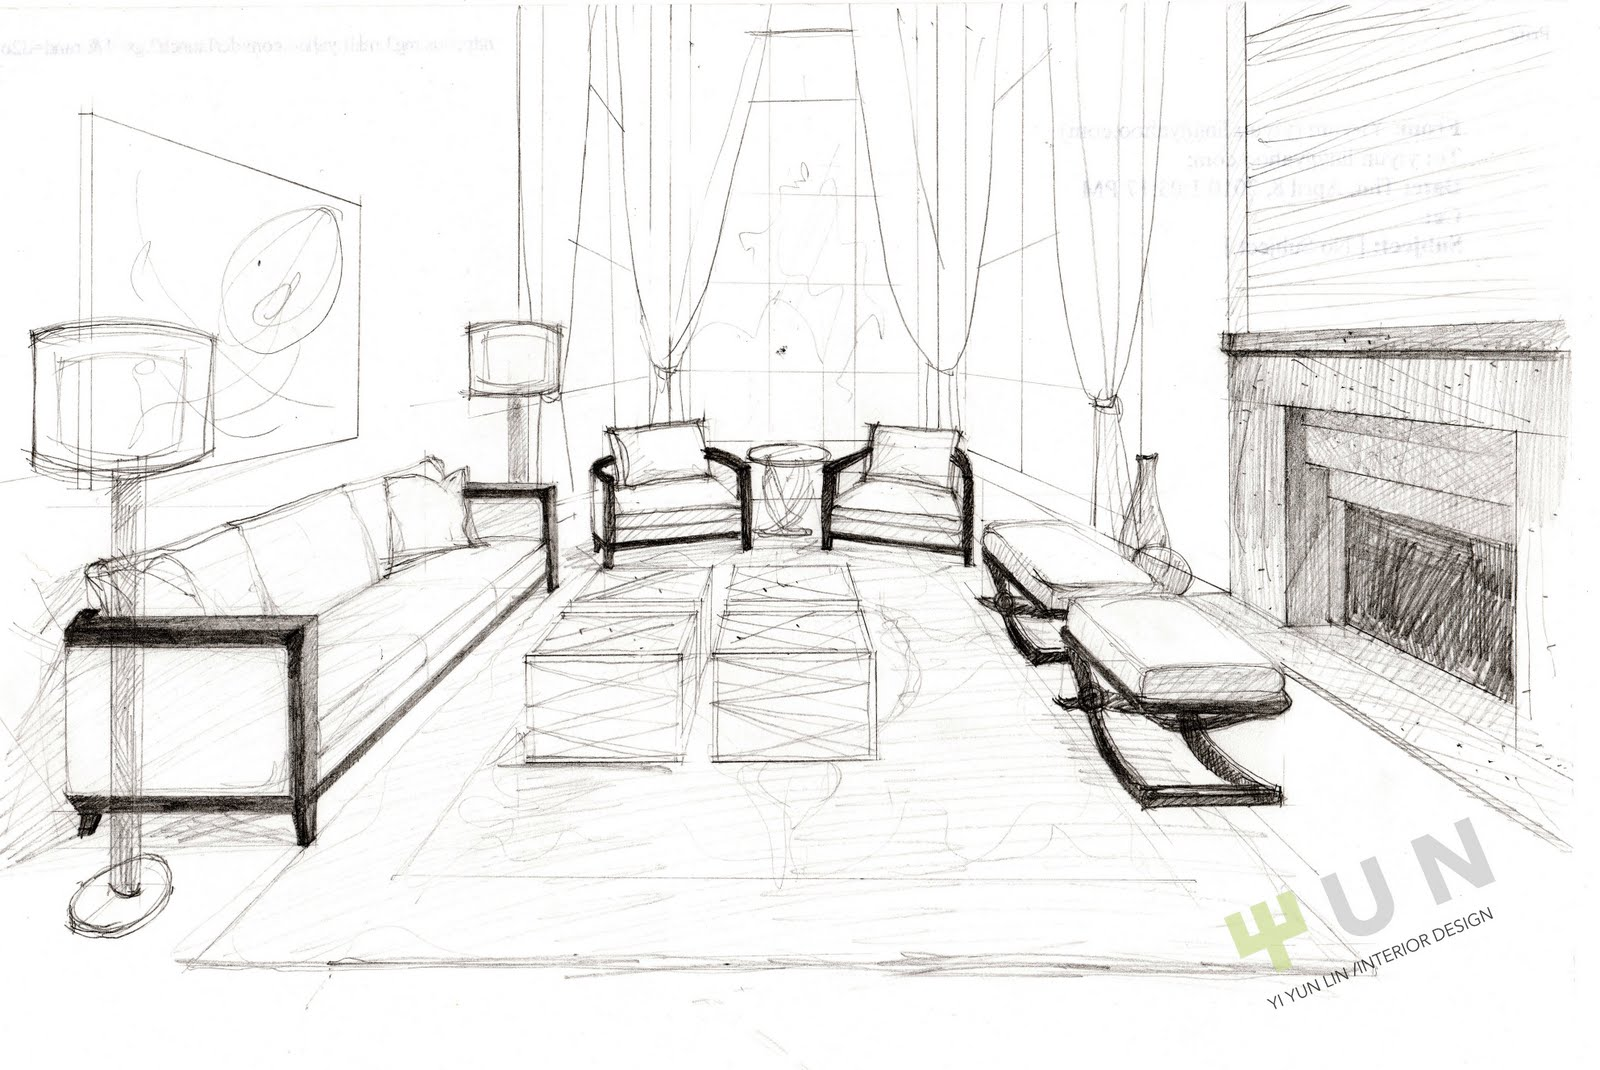 Interior design sketches wallpress 1080p hd desktop for Bedroom designs sketch